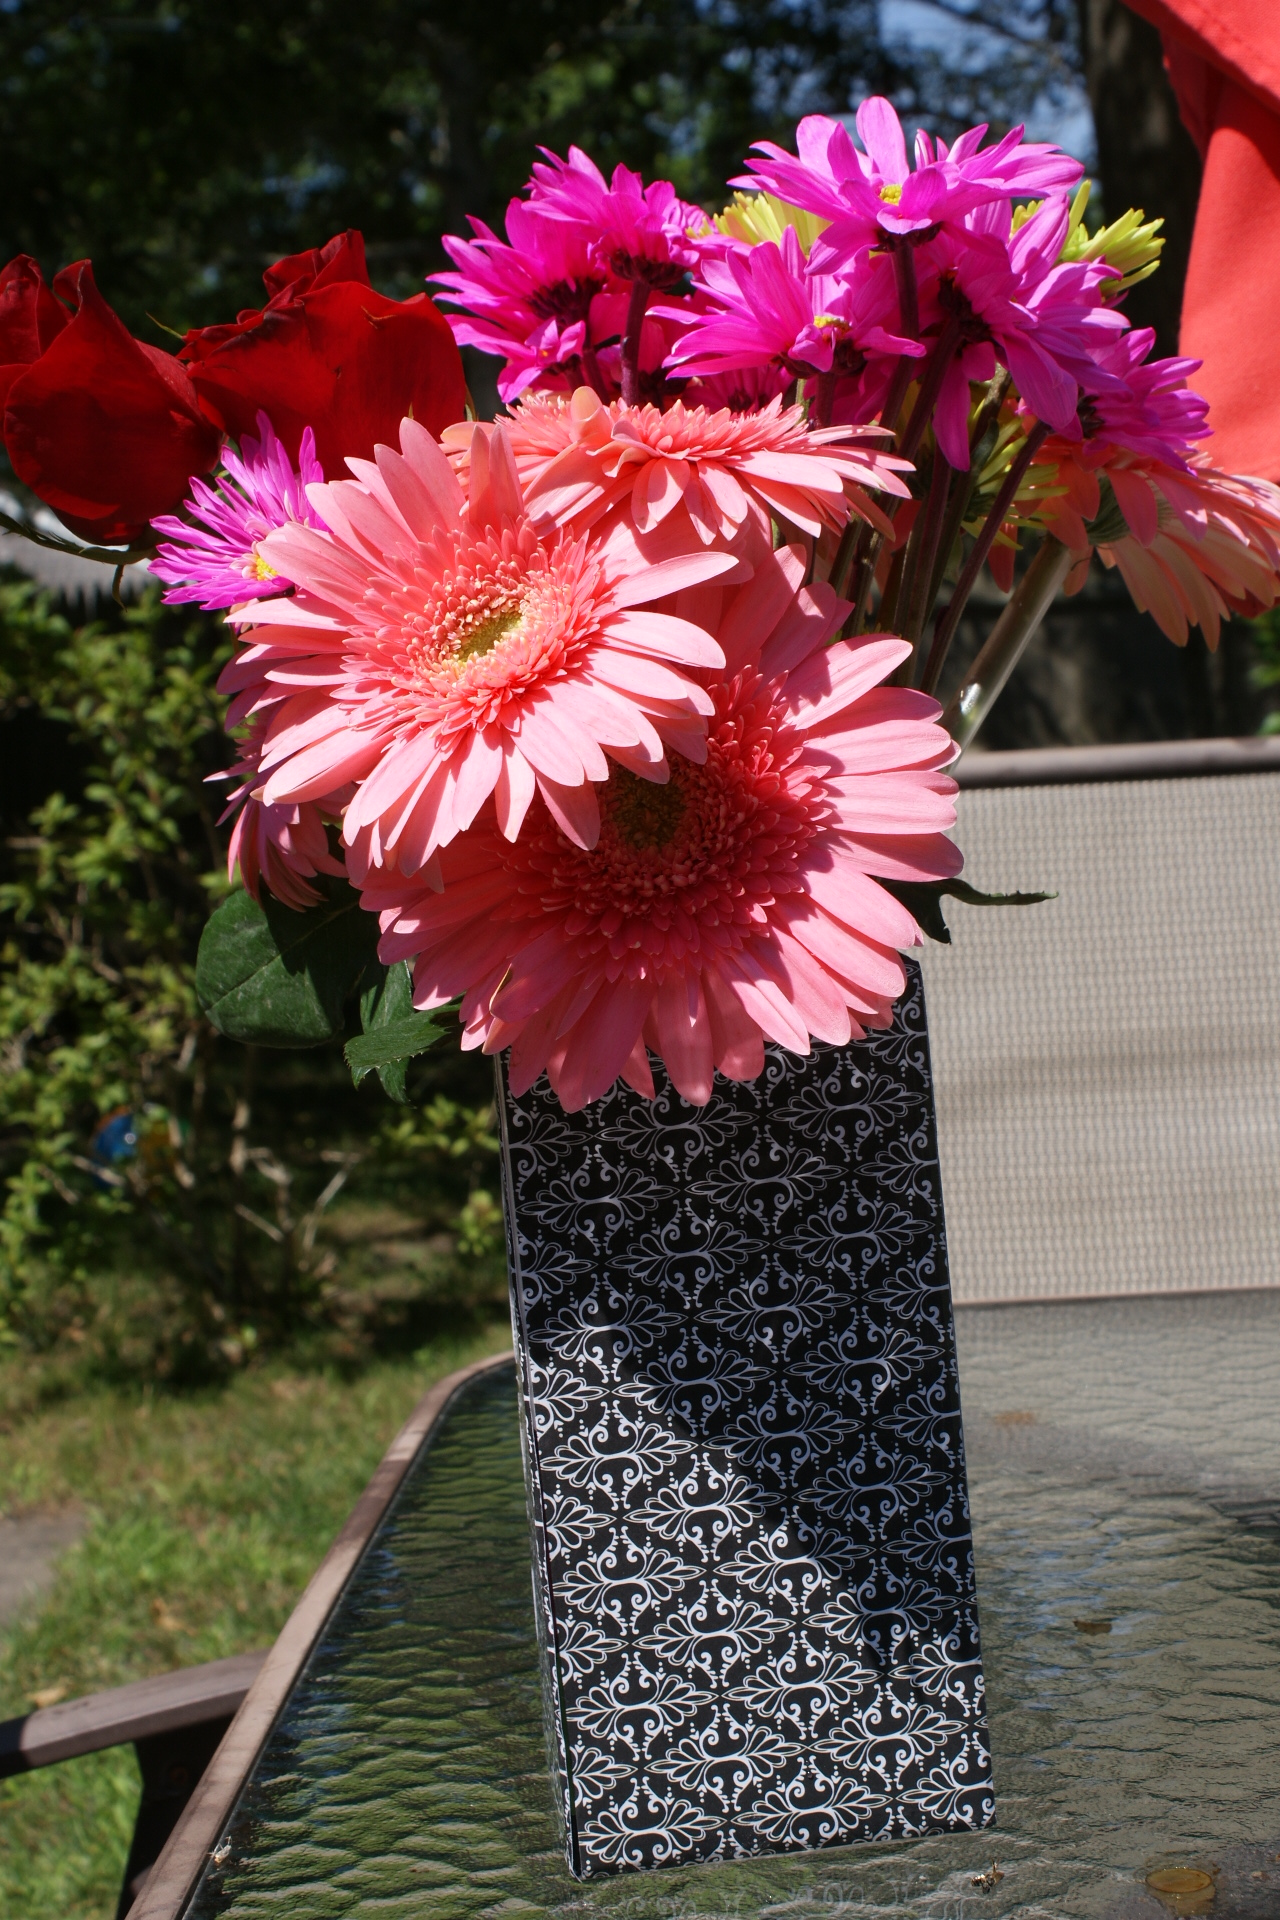 Add Flowers to your Upcycled Vase